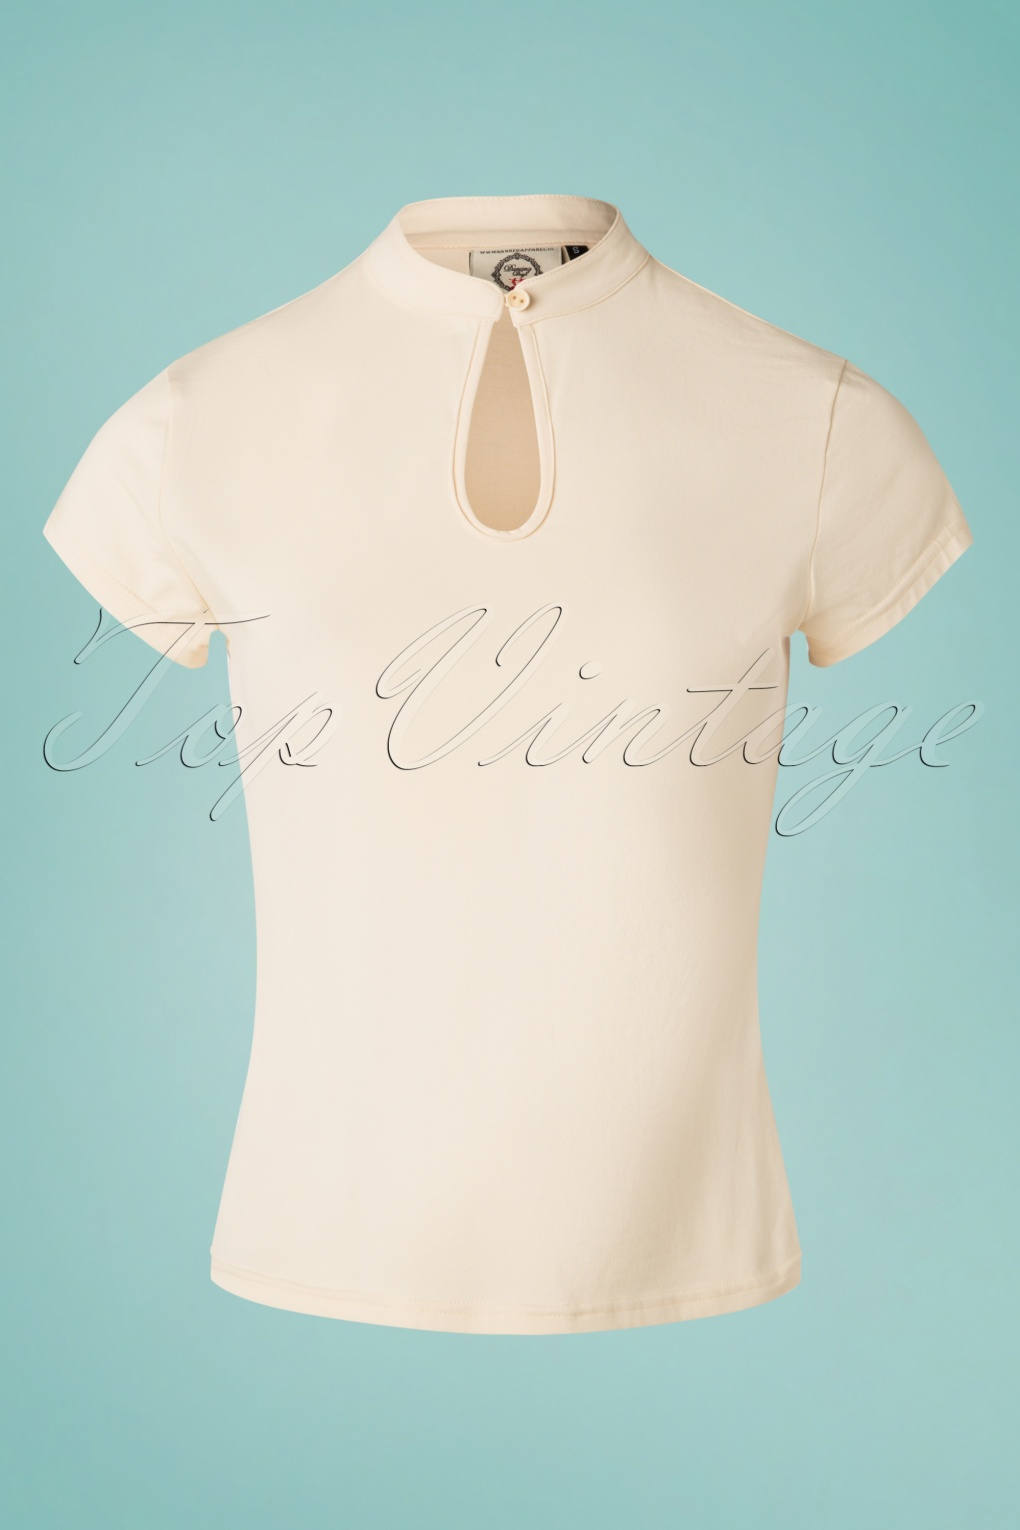 Vintage & Retro Shirts, Halter Tops, Blouses 50s Mandarin Collar Top in Cream £21.38 AT vintagedancer.com